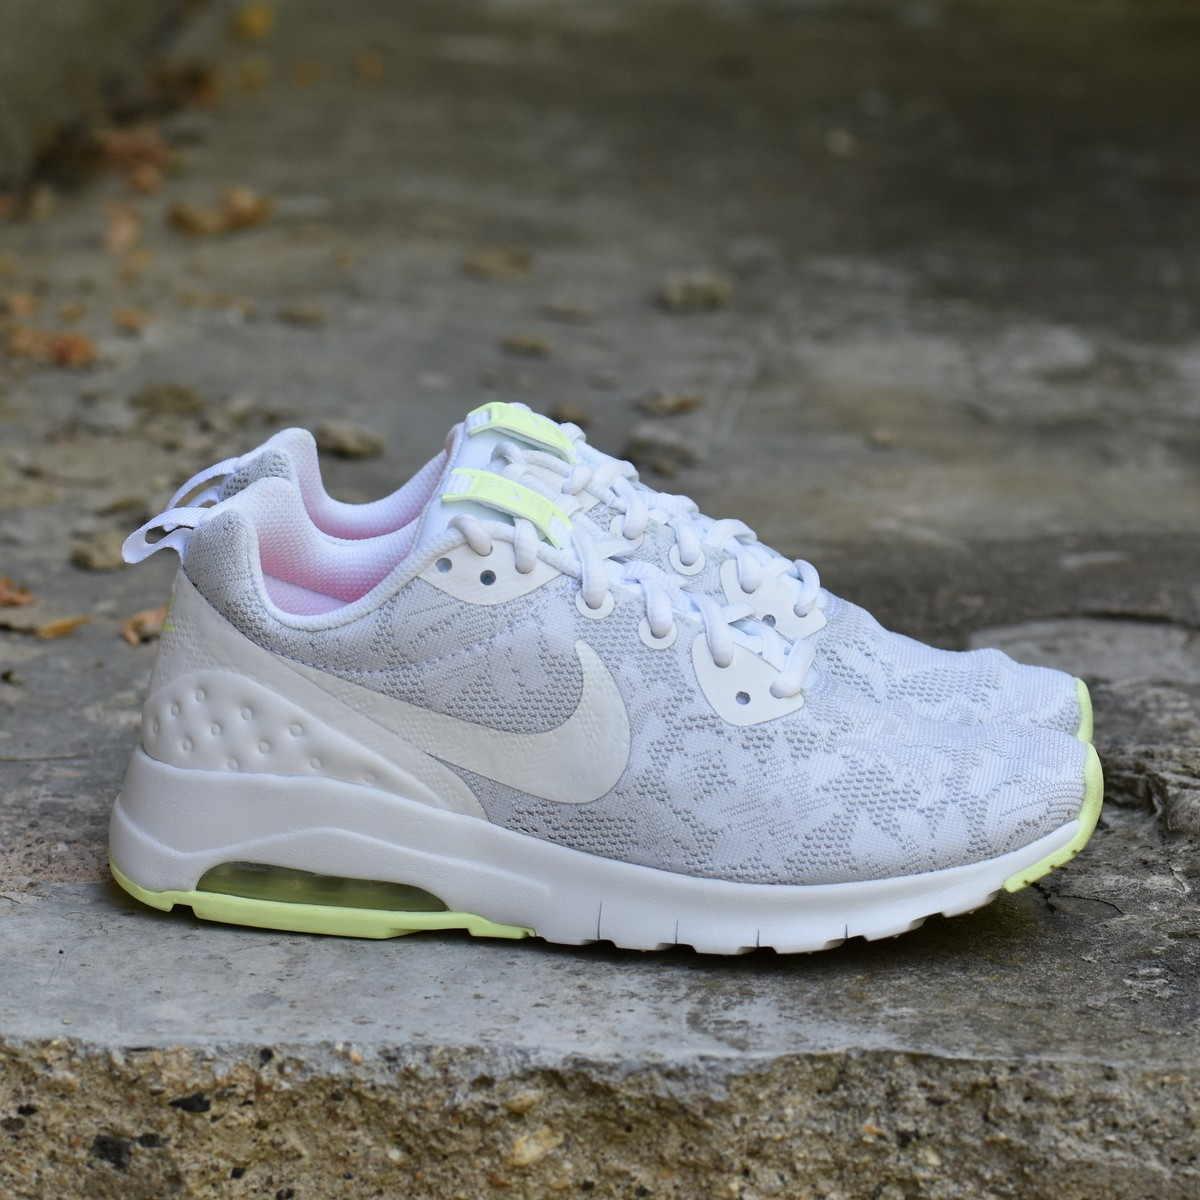 boutique dámské sneakersy boty nike air max motion lw